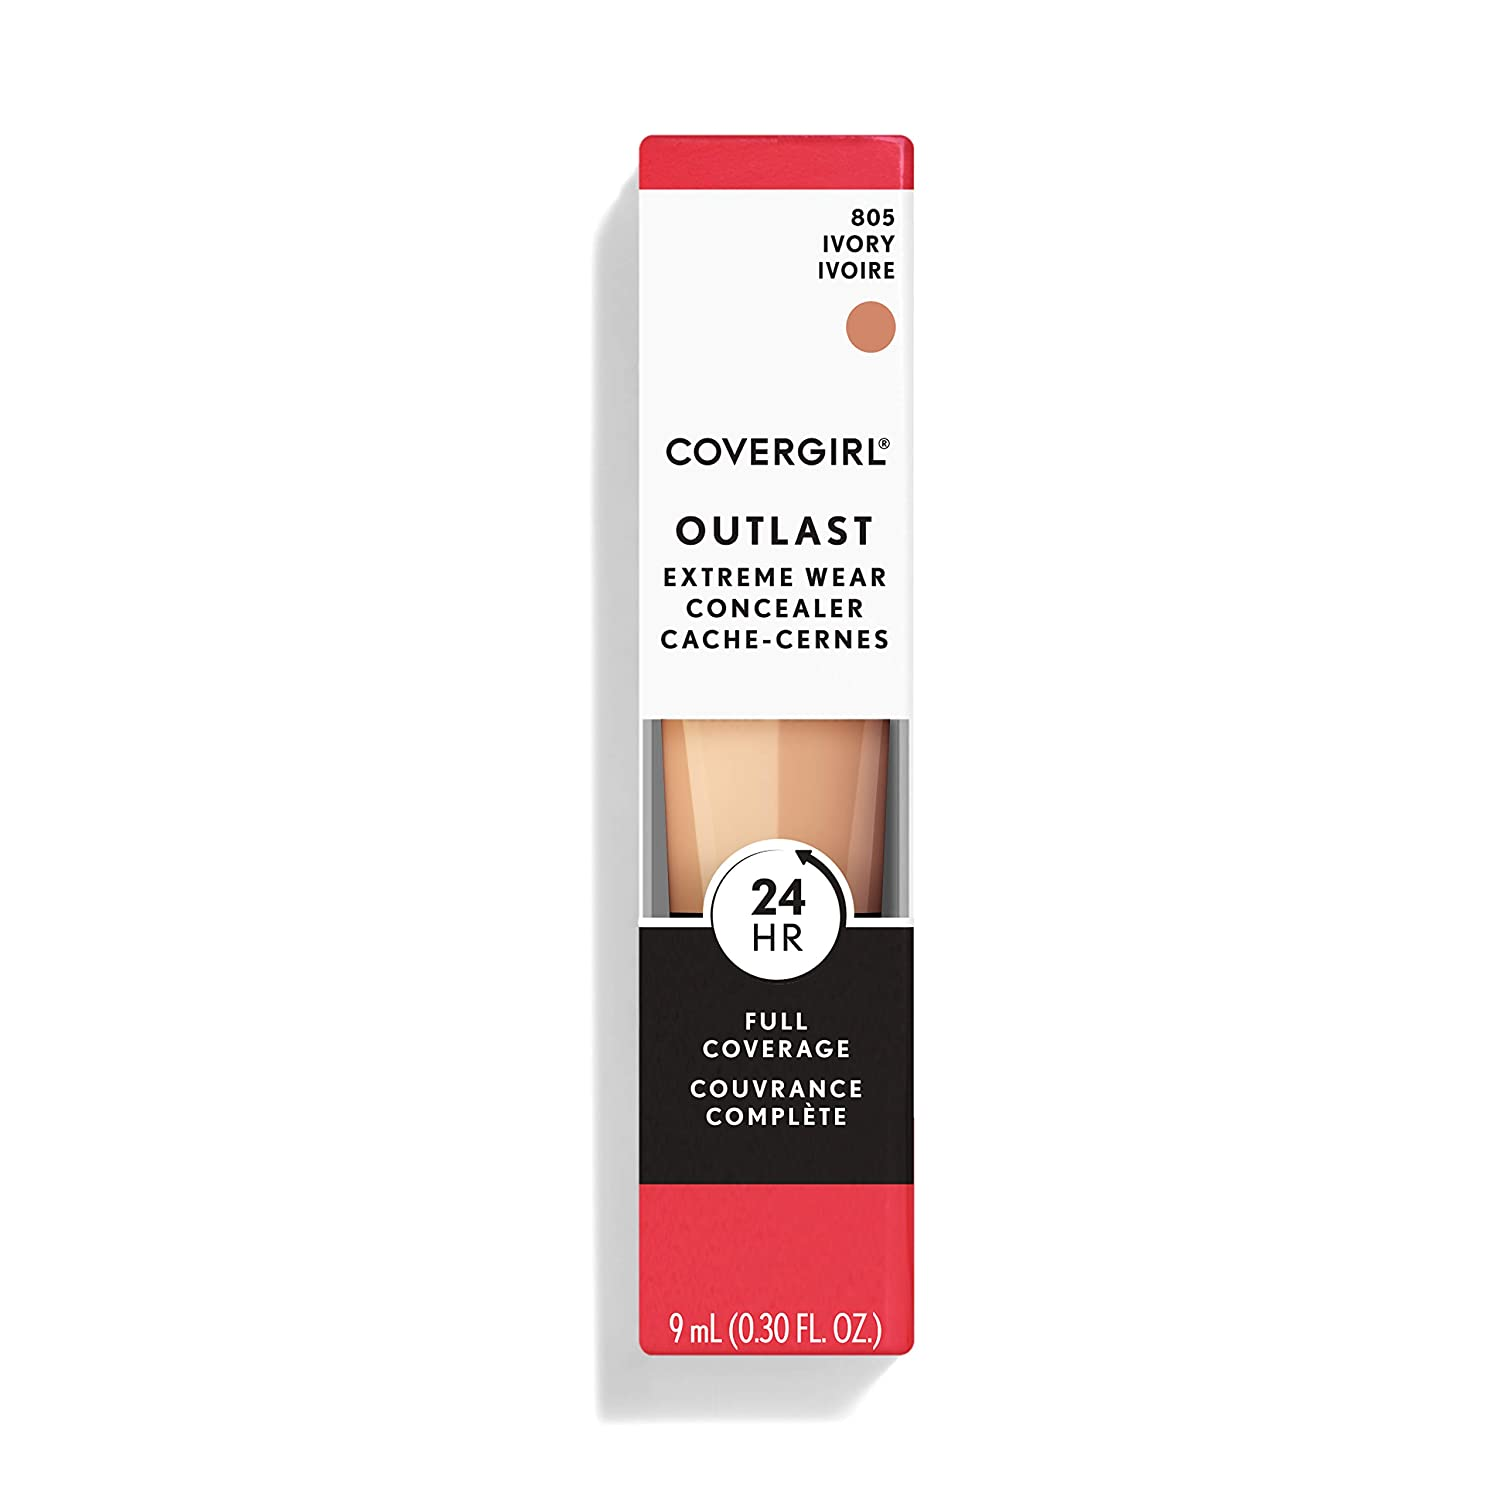 COVERGIRL Outlast Extreme Wear Concealers